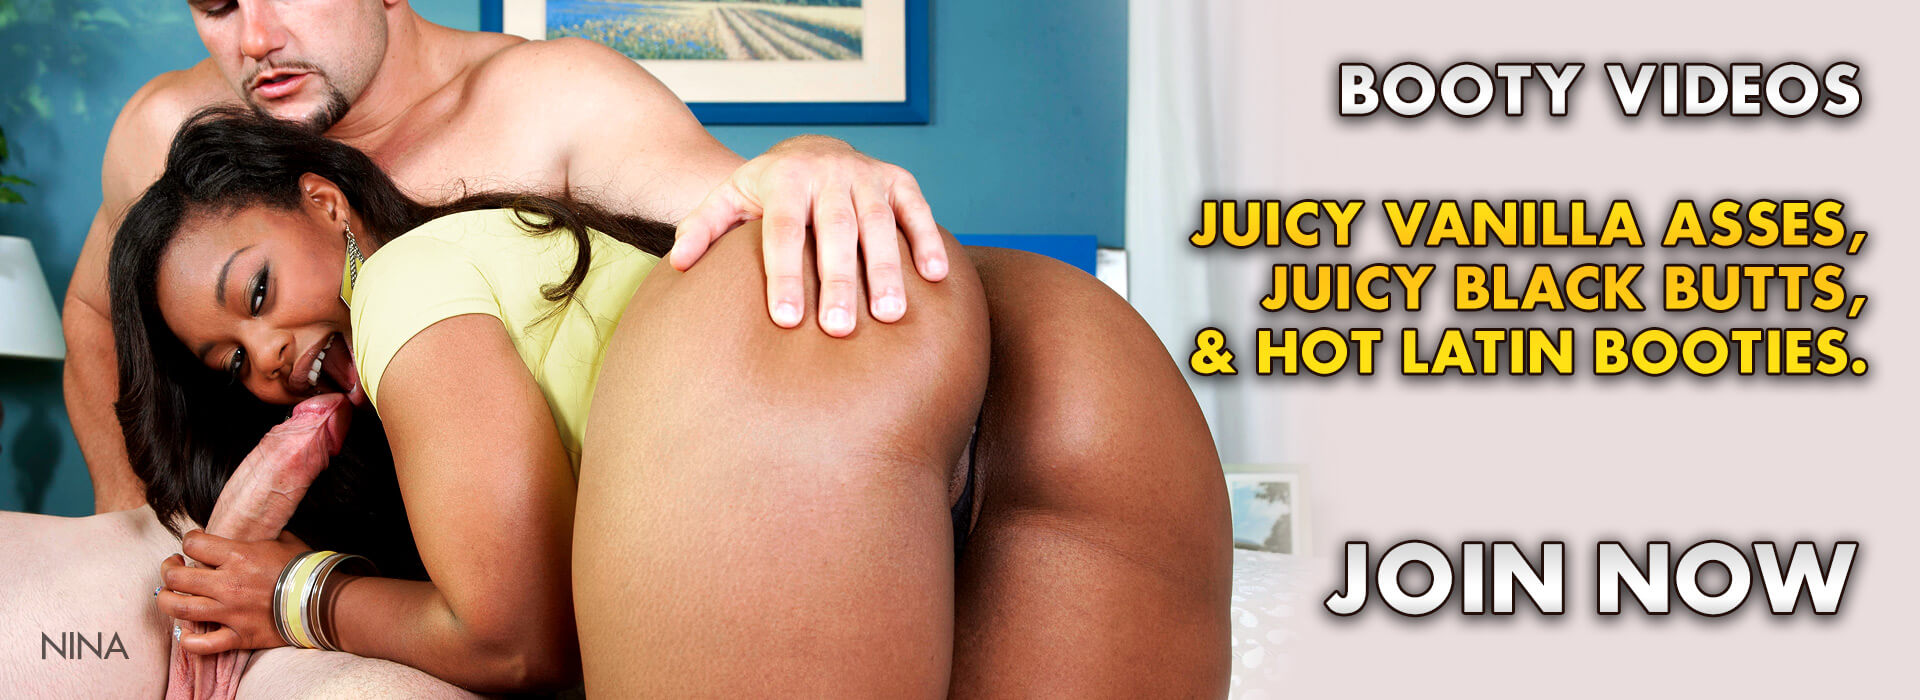 Bubble Butts in Anal, Interracial and XXX Action - Join Now!